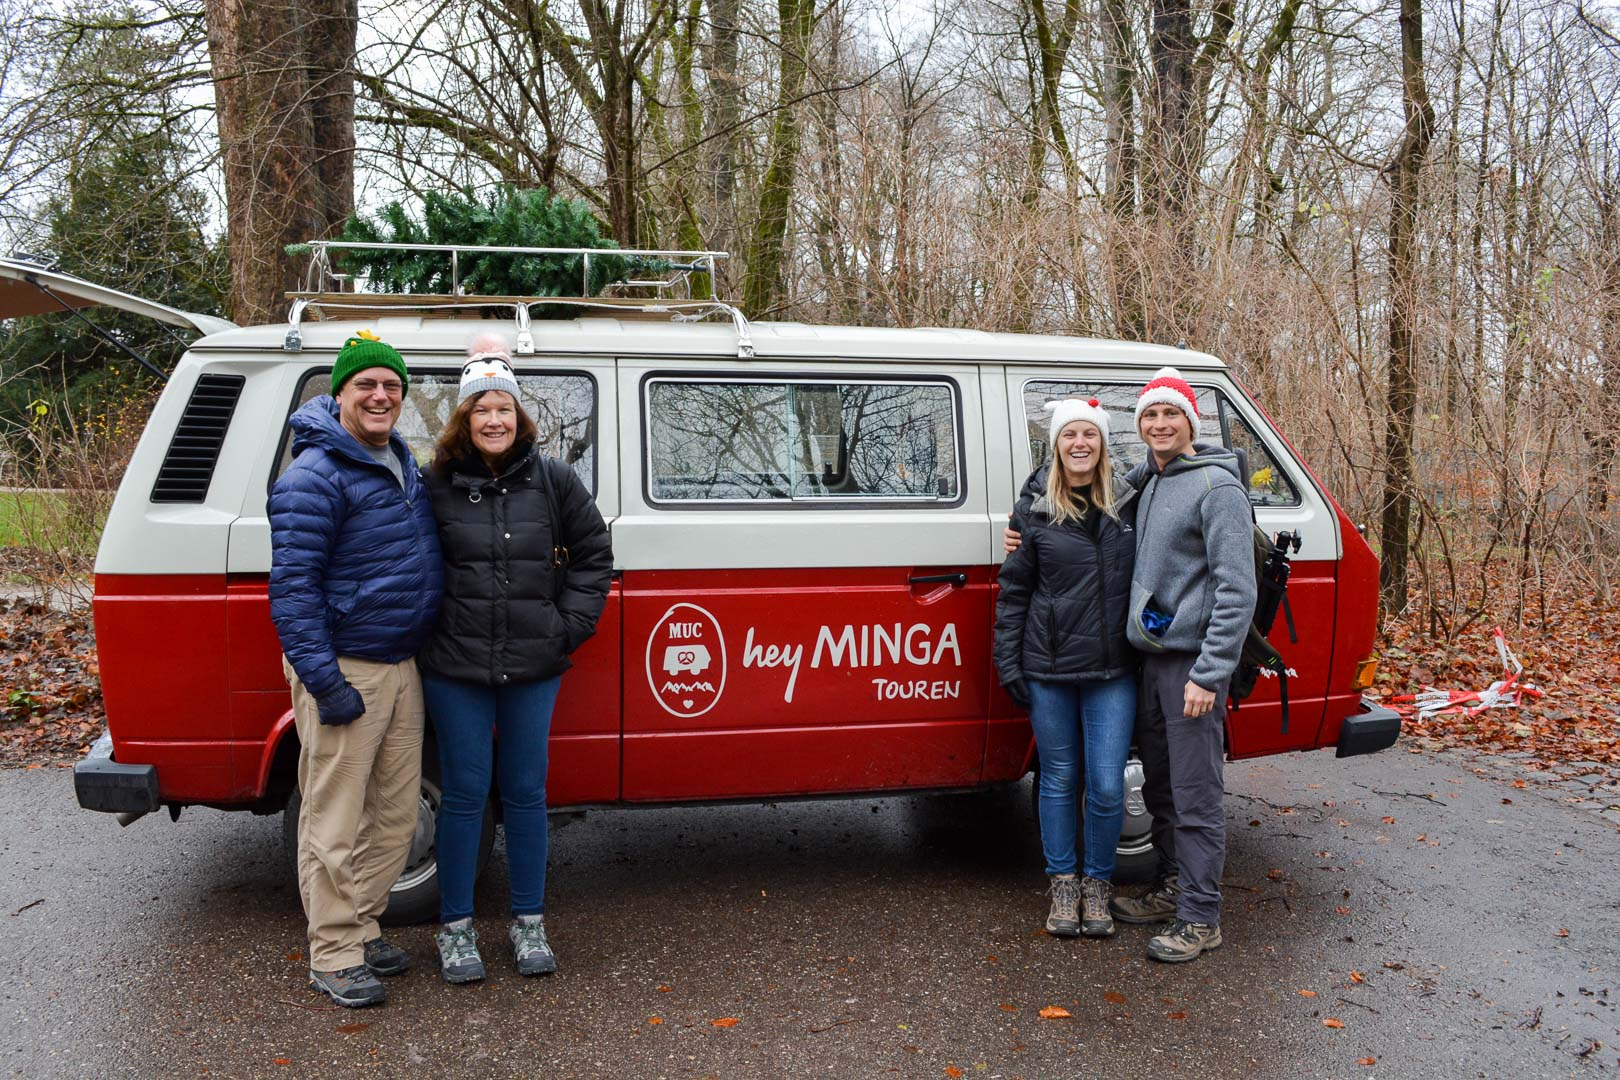 In front of Gertie, our ride for the Hey Minga Tour